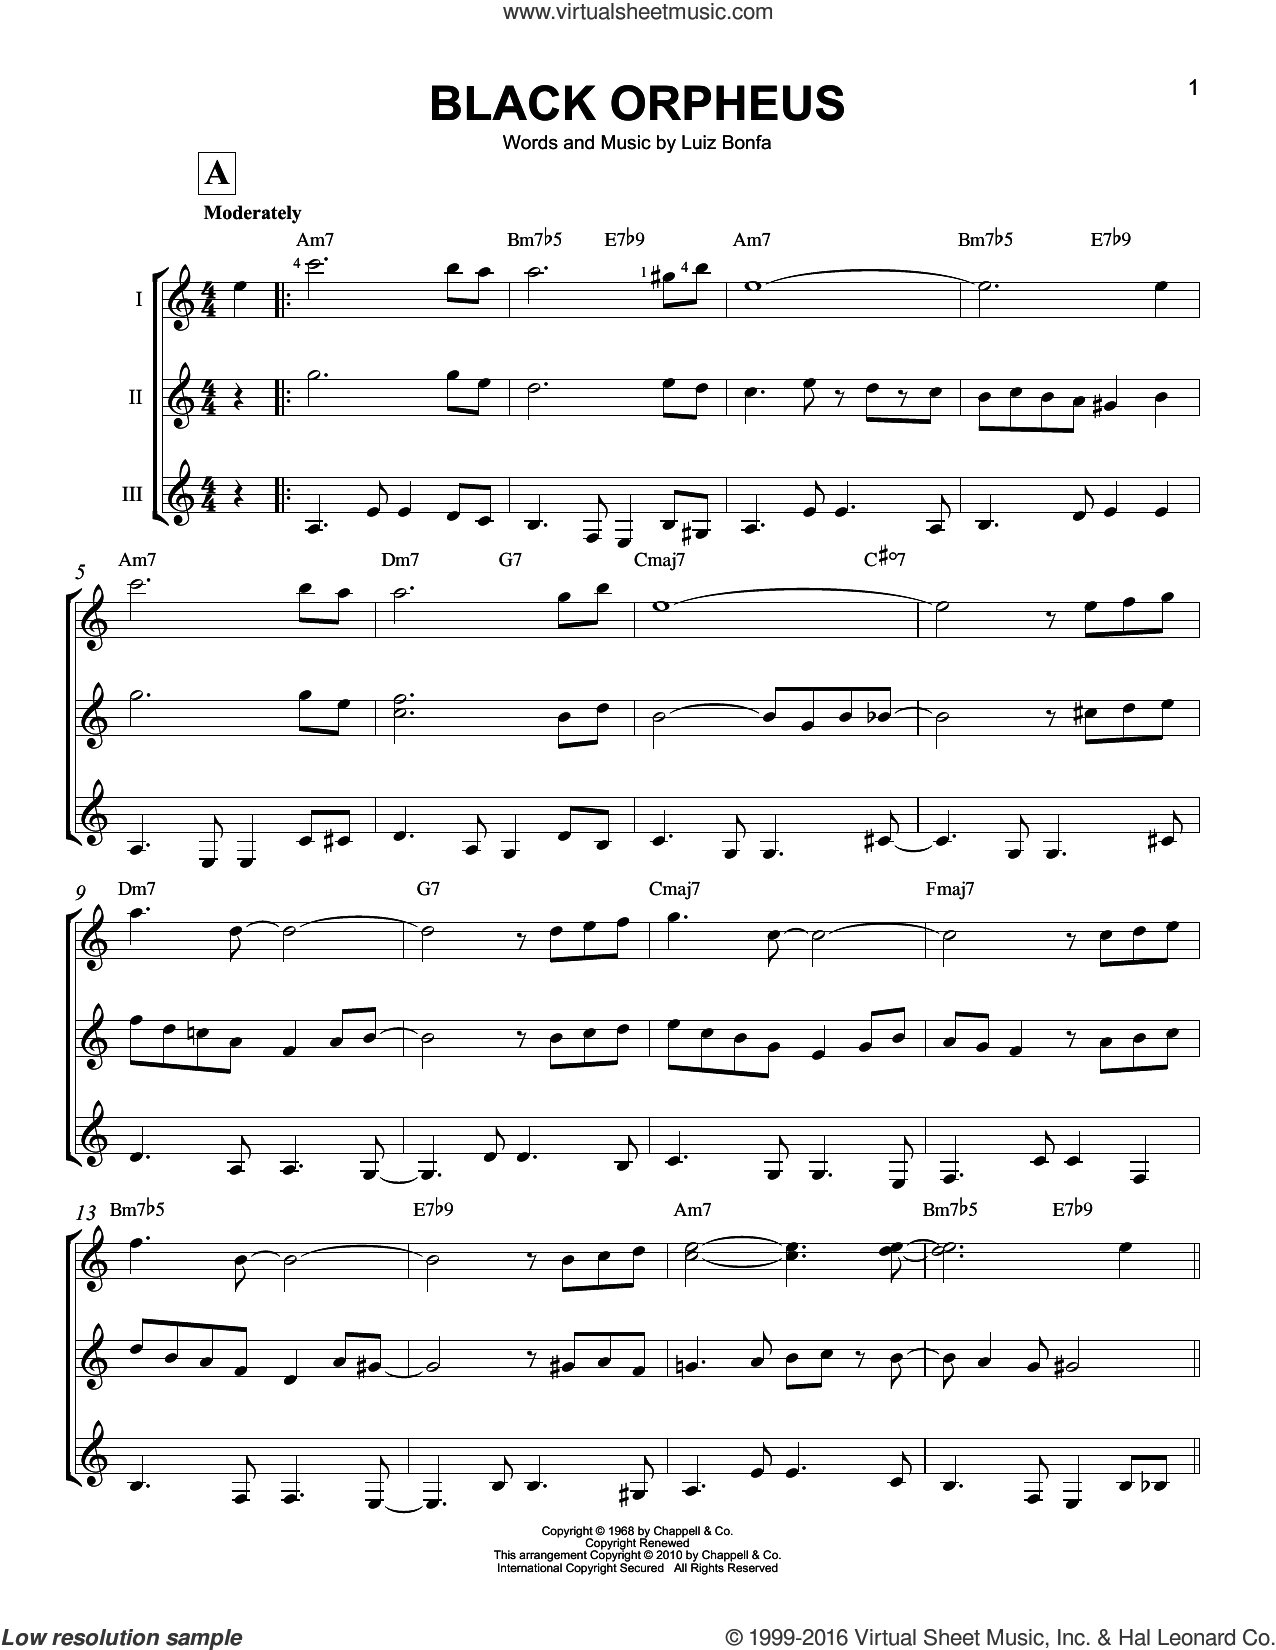 Black Orpheus sheet music for guitar ensemble by Luiz Bonfa, Stan Getz and Antonio Carlos Jobim. Score Image Preview.